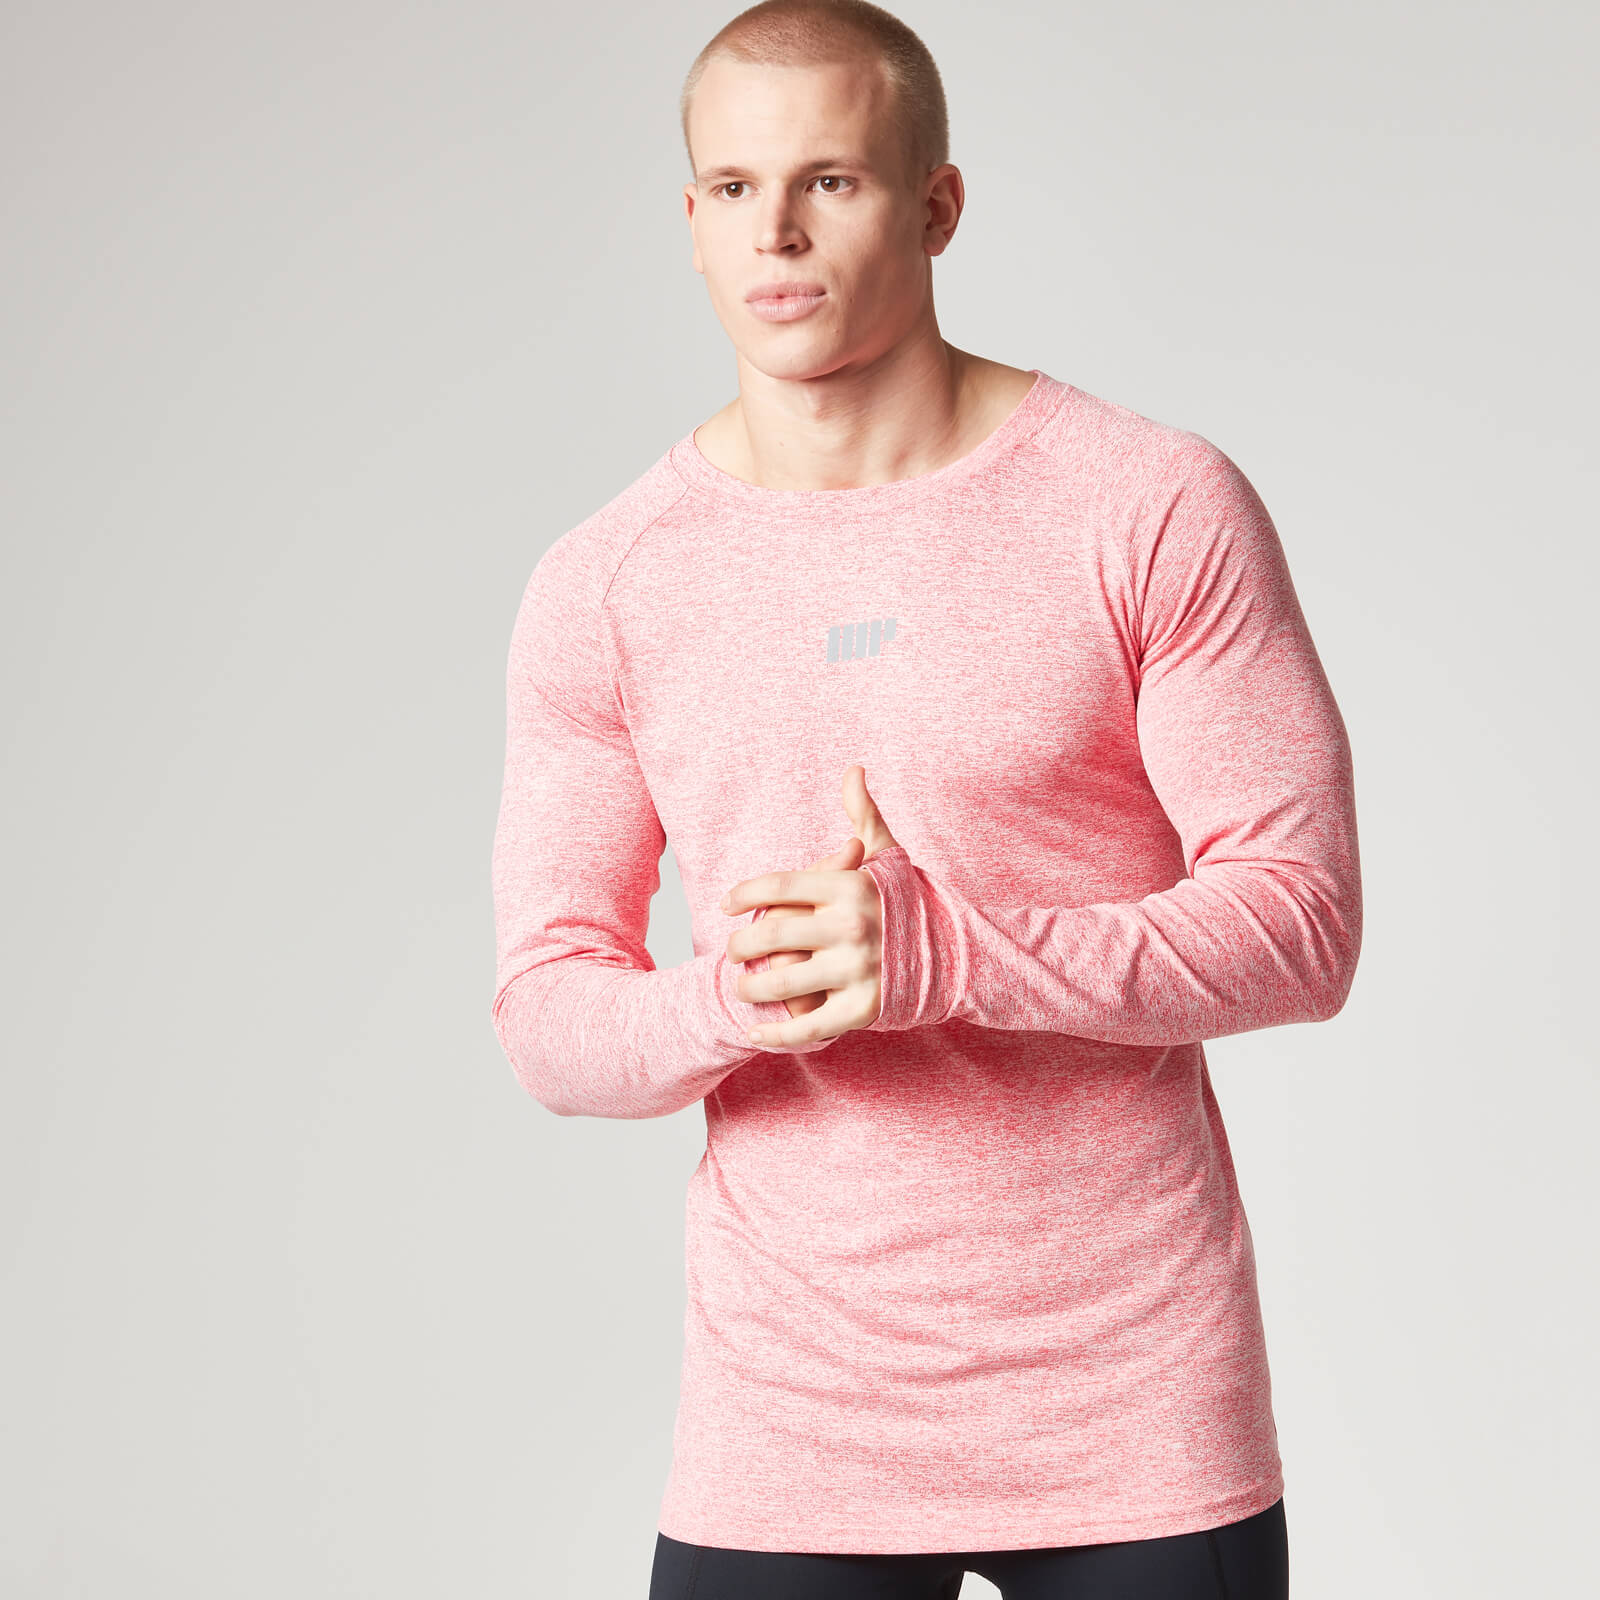 Myprotein Loose Fit Trainingstop Männer - Pink